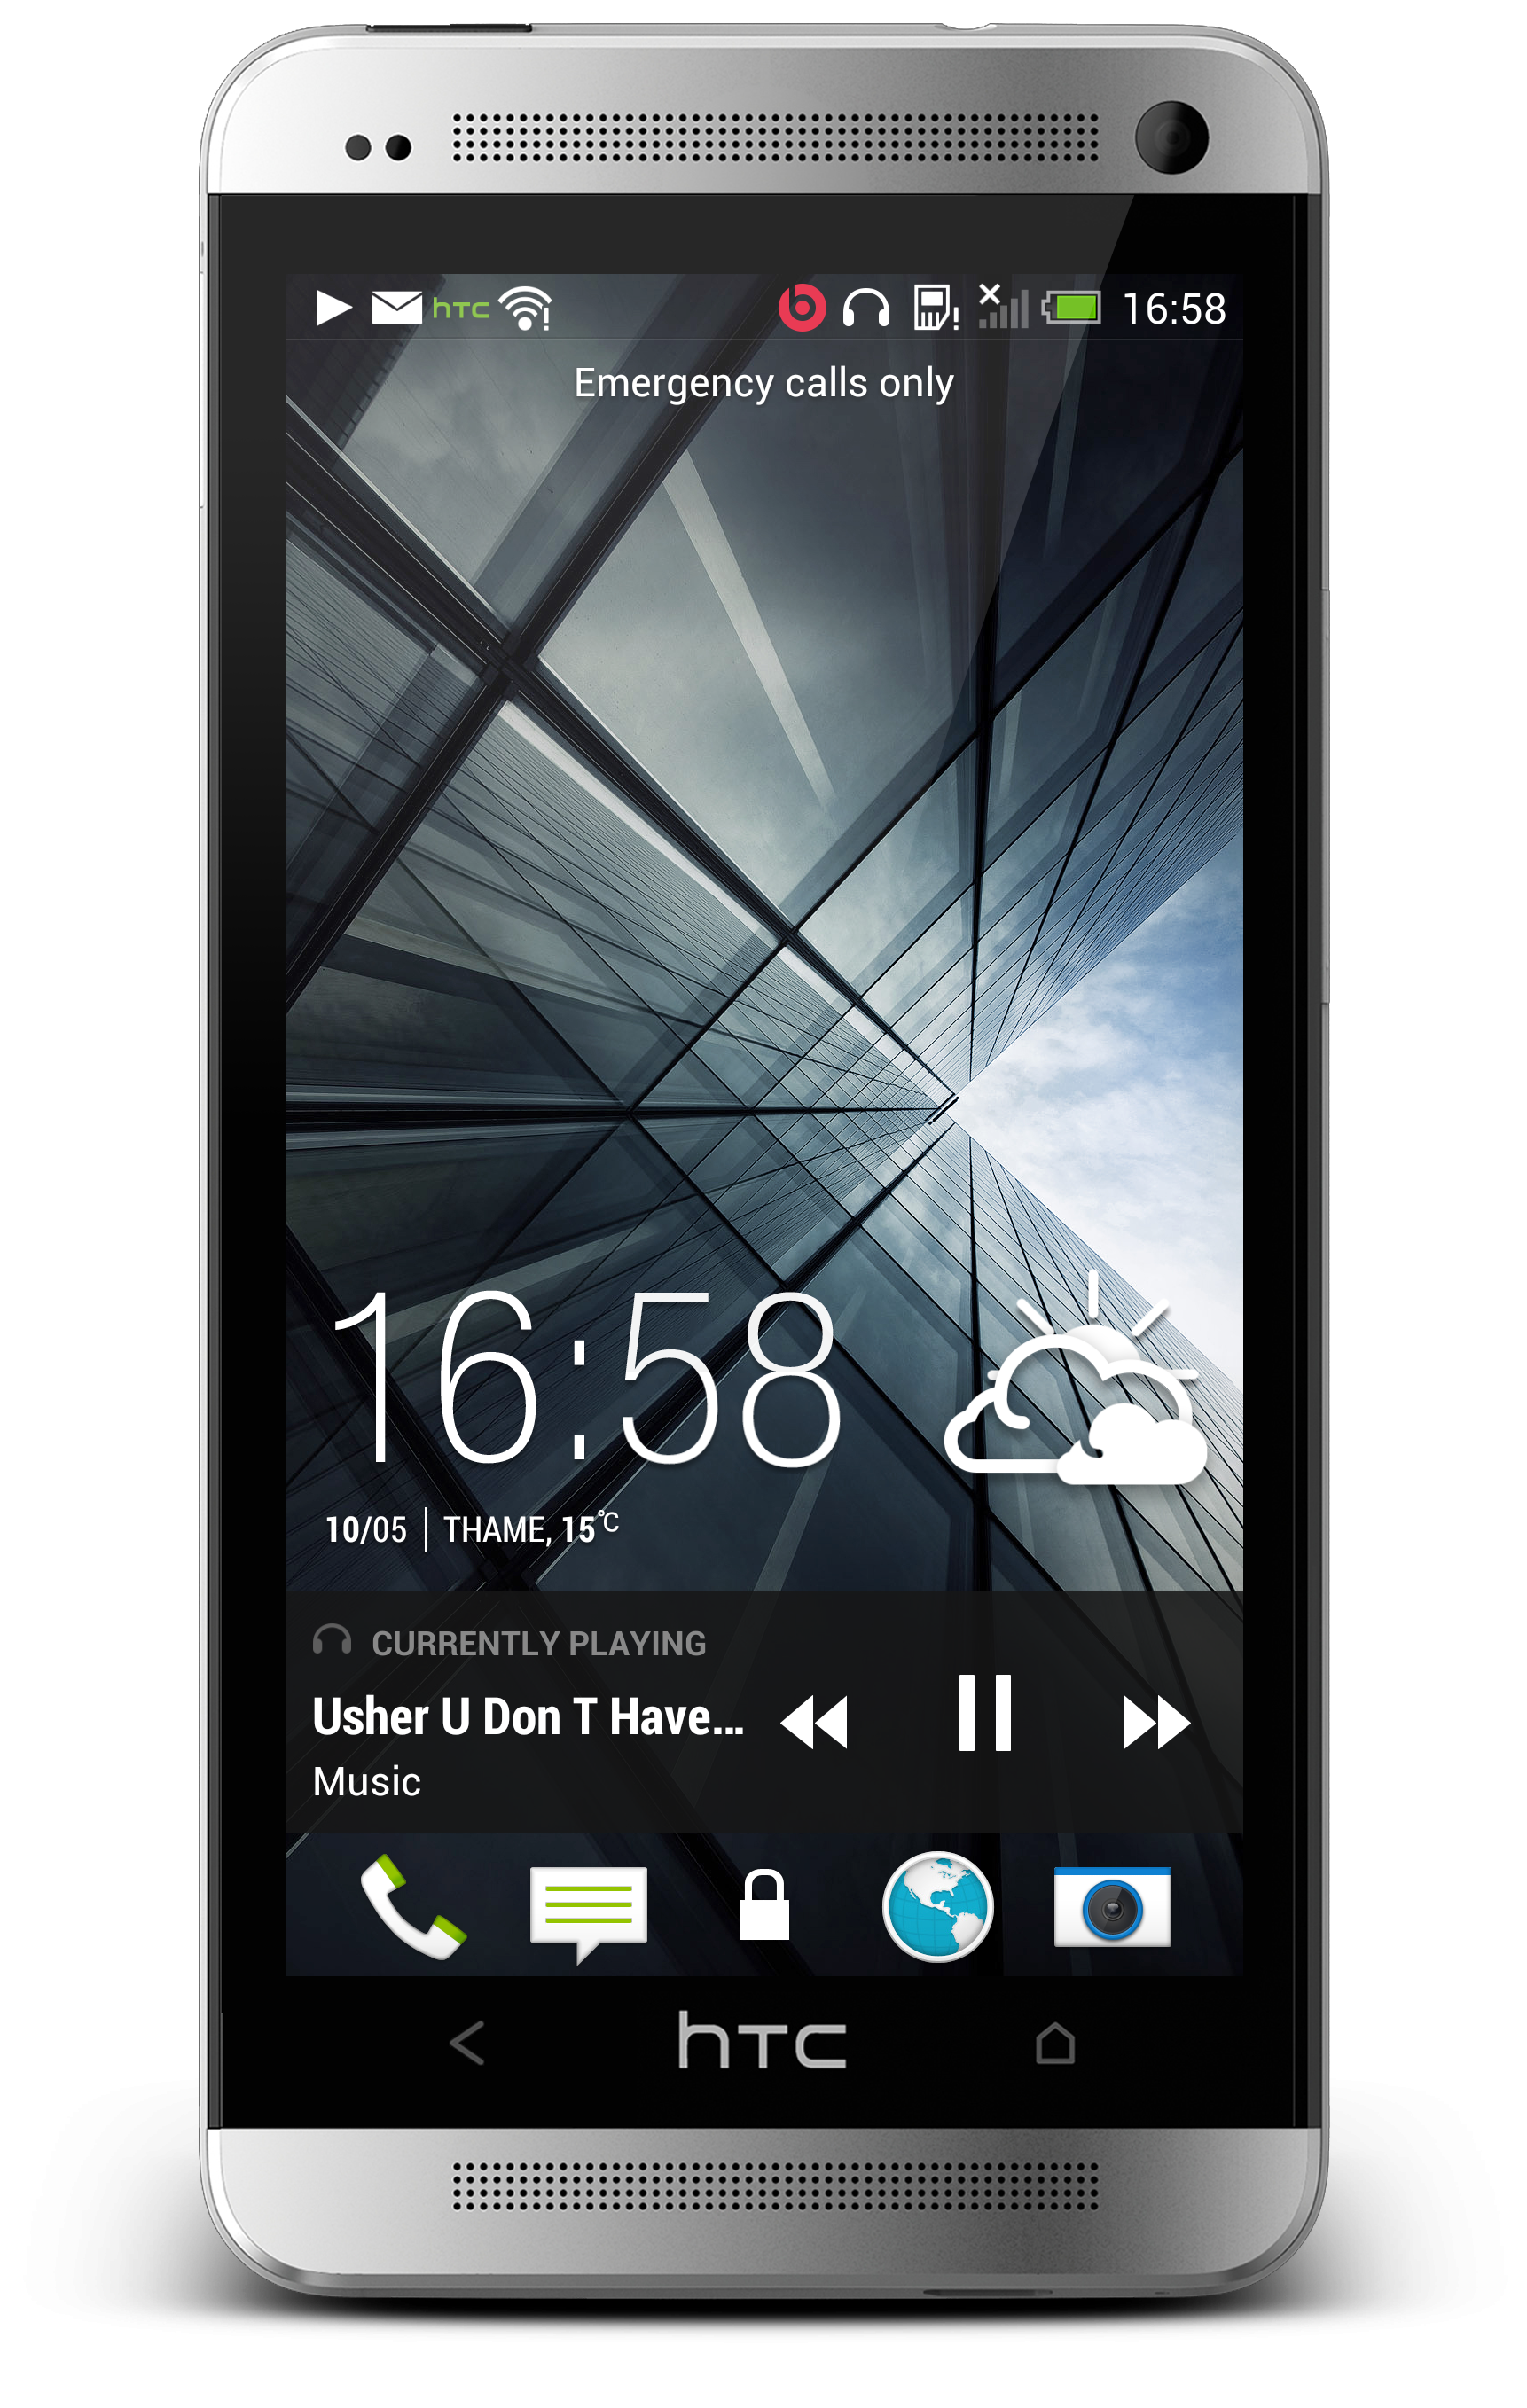 HTC TyTN II - Full phone specifications